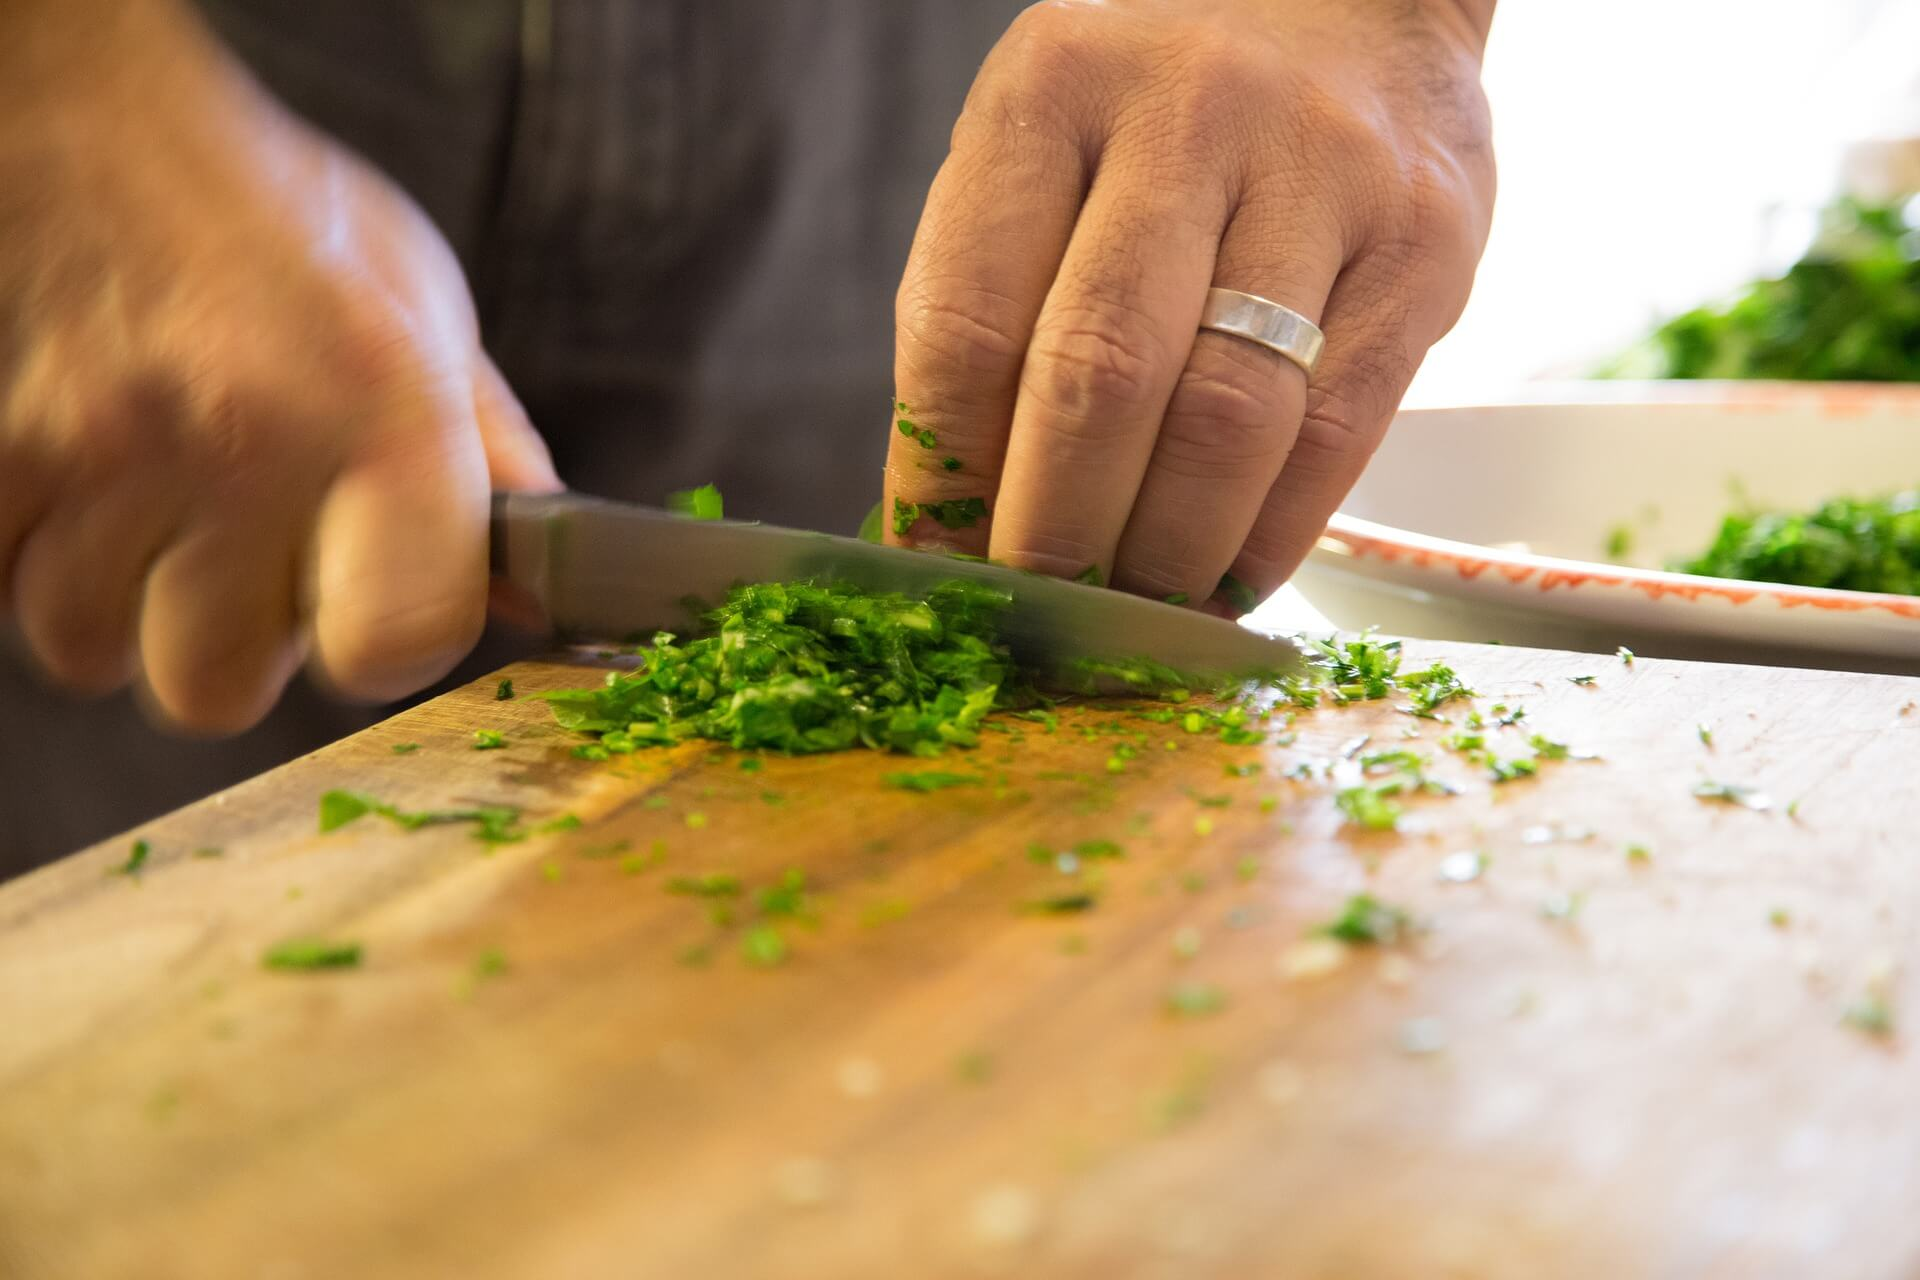 man in kitchen chopping and preparing food.